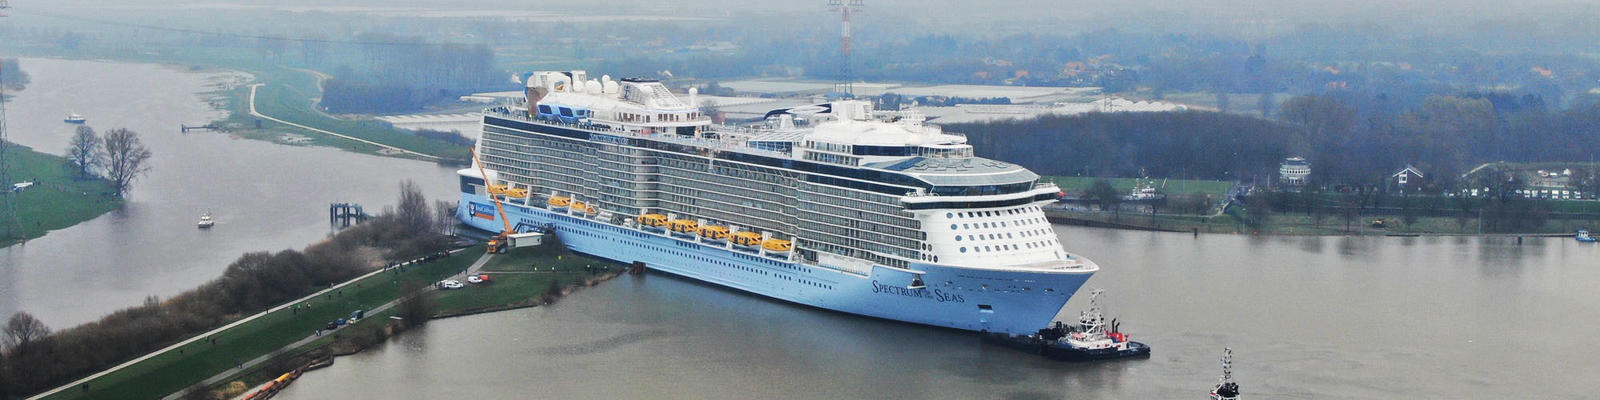 Spectrum of the Seas on its conveyance up the Ems River. (Photo: Royal Caribbean International)